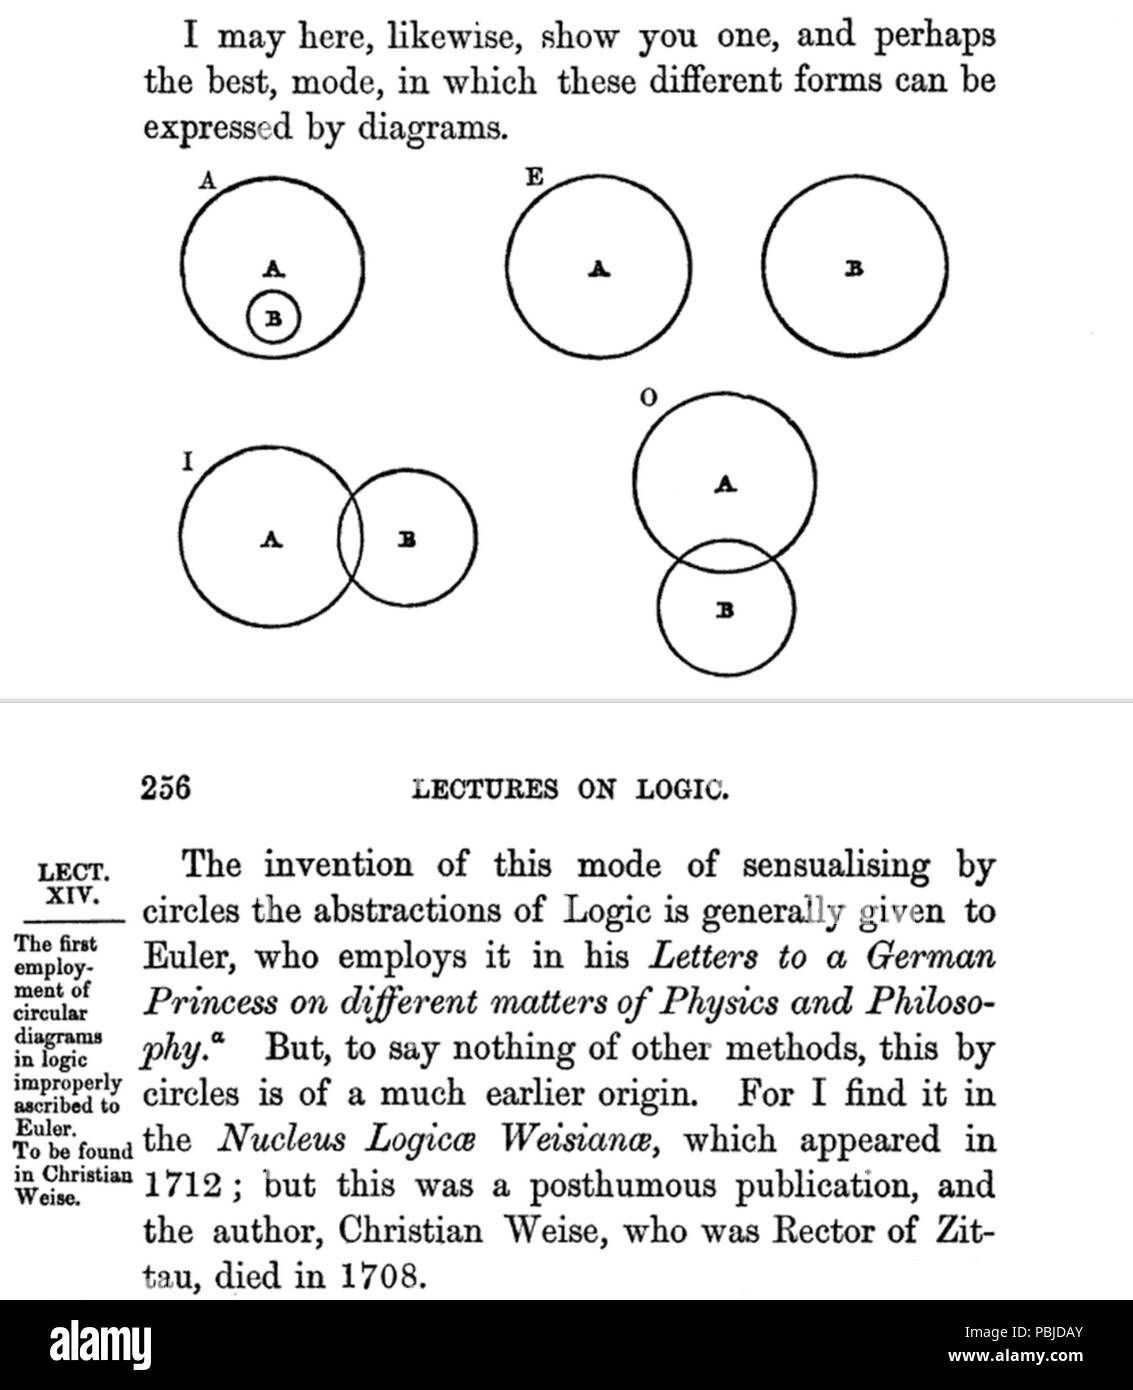 hight resolution of 740 hamilton lectures on logic 1874 euler diagrams